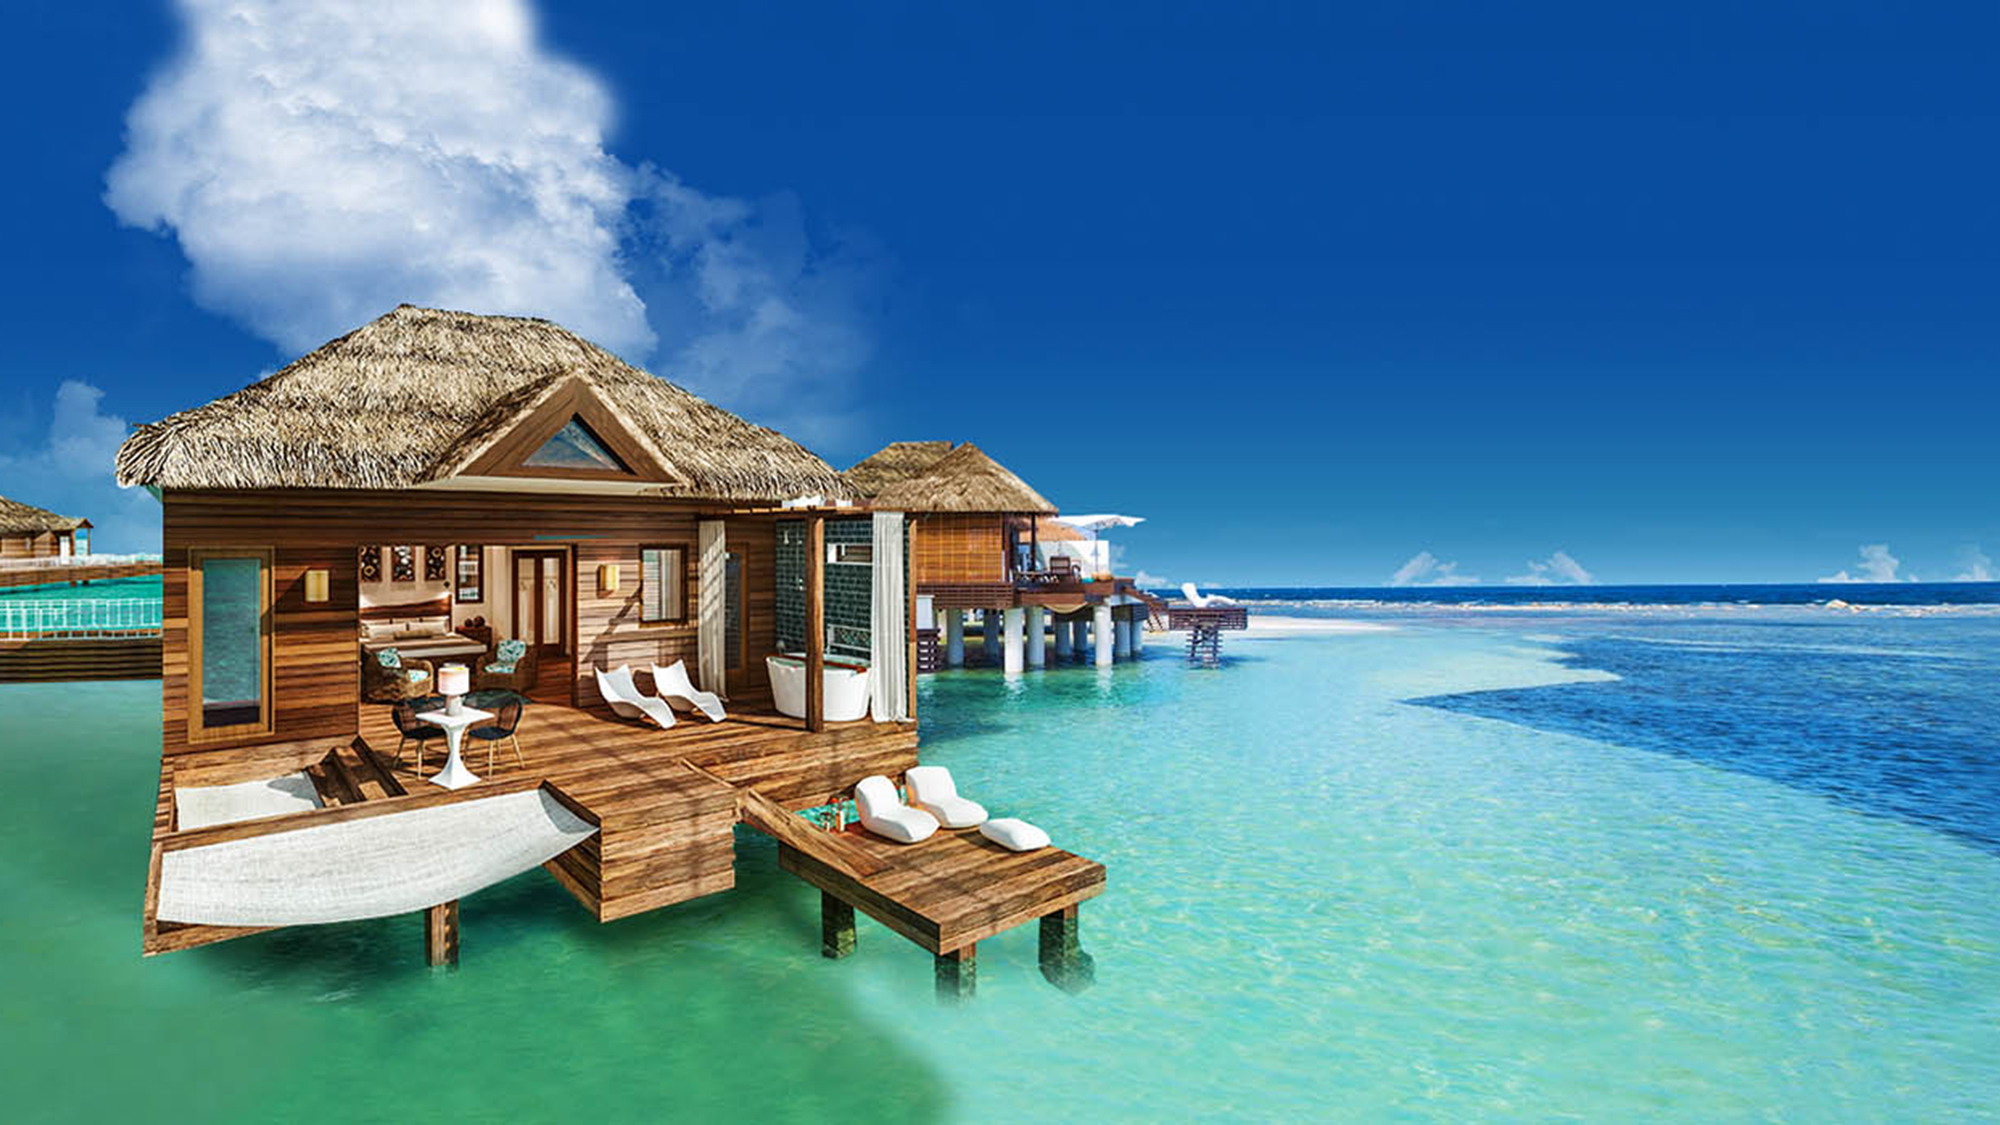 Rendering Of An Overwater Bungalow At Sandals South Coast In Jamaica.